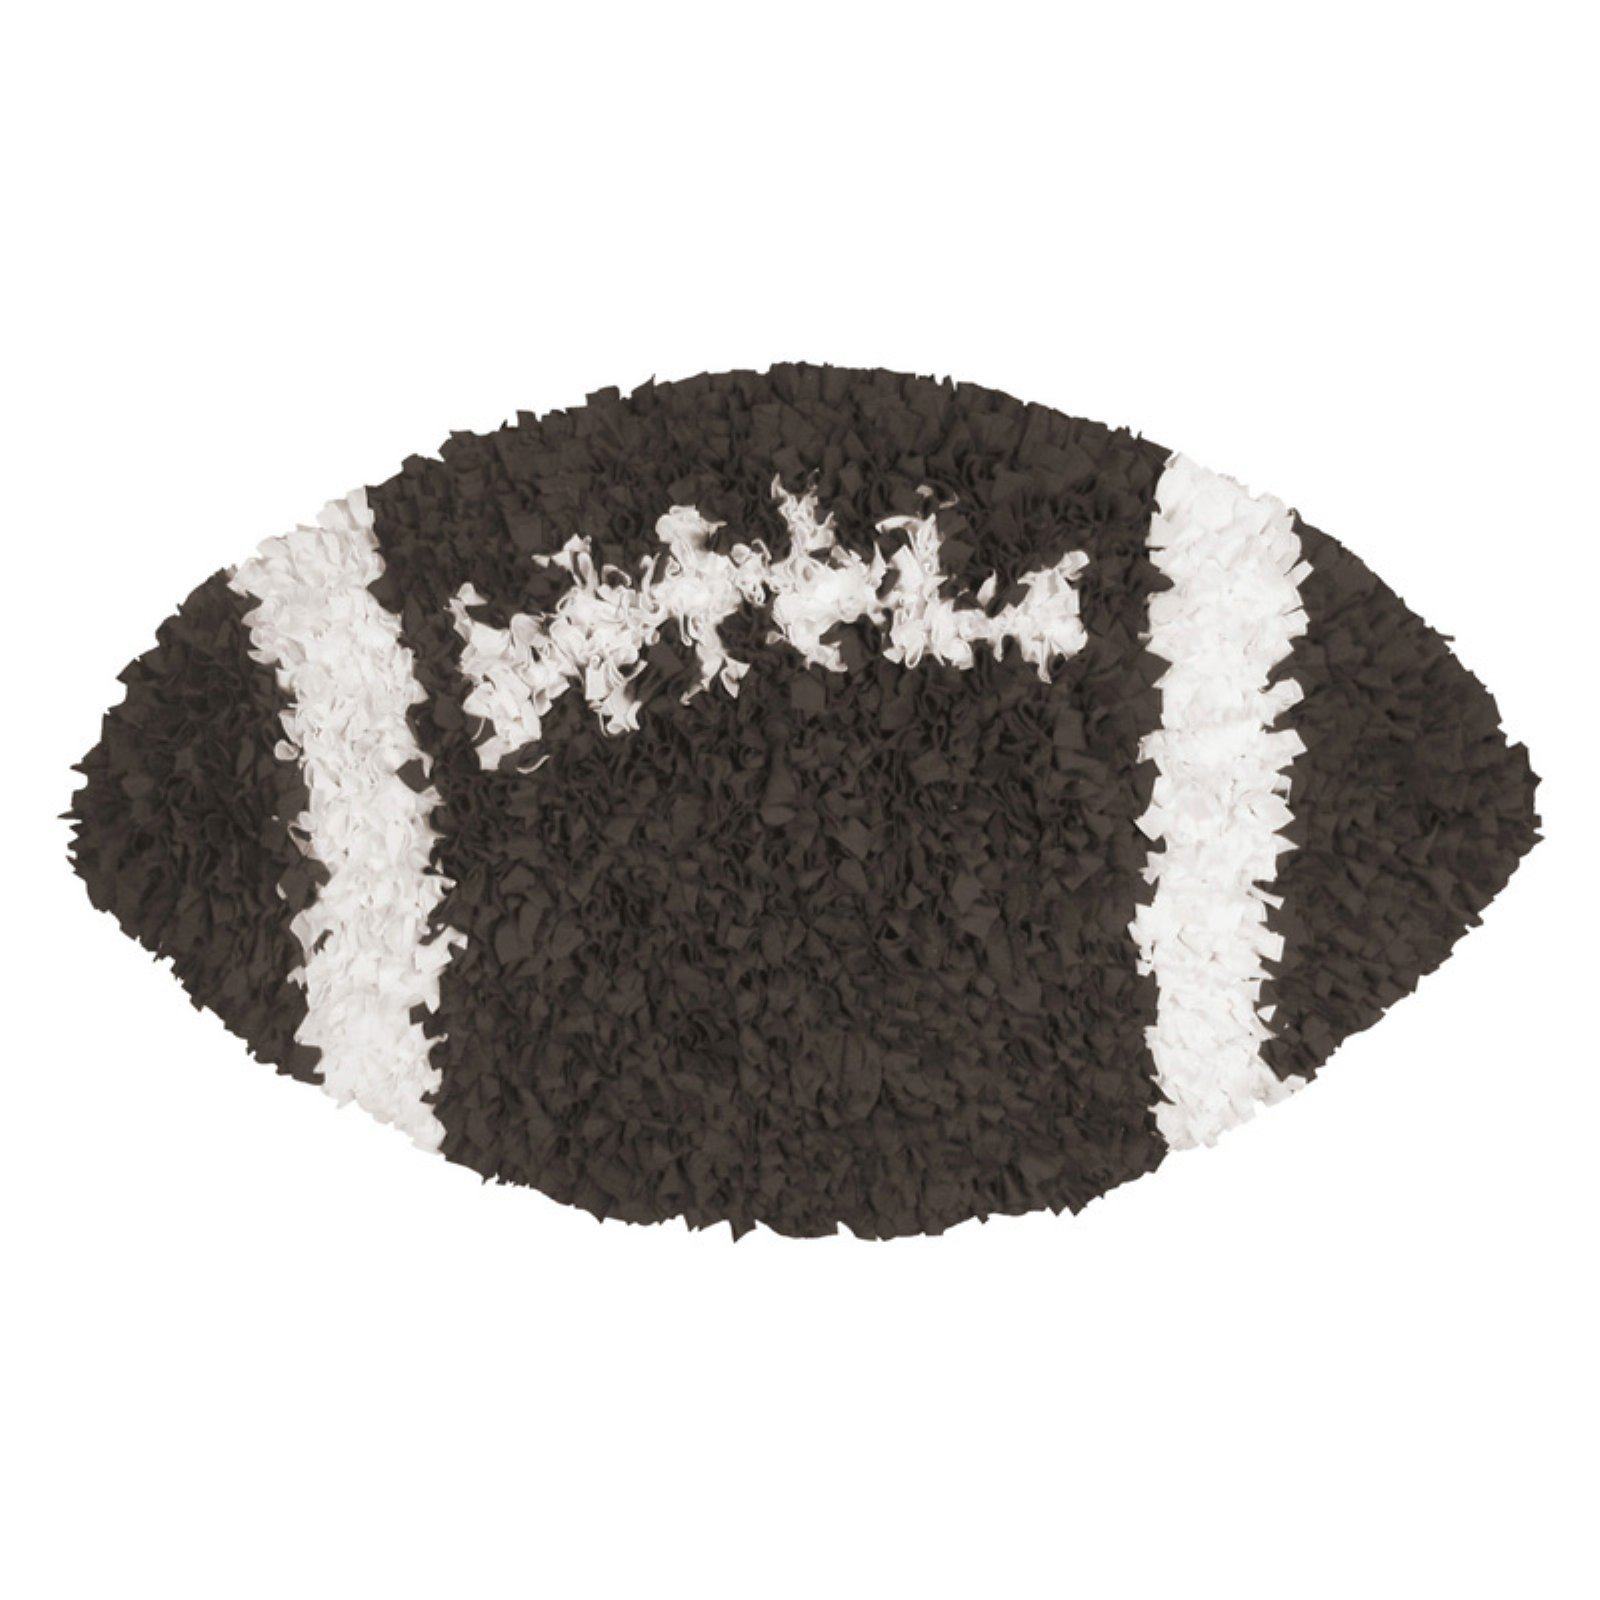 The Rug Market Shaggy Raggy Football Shaped Area Rug, Size 3' x 3'